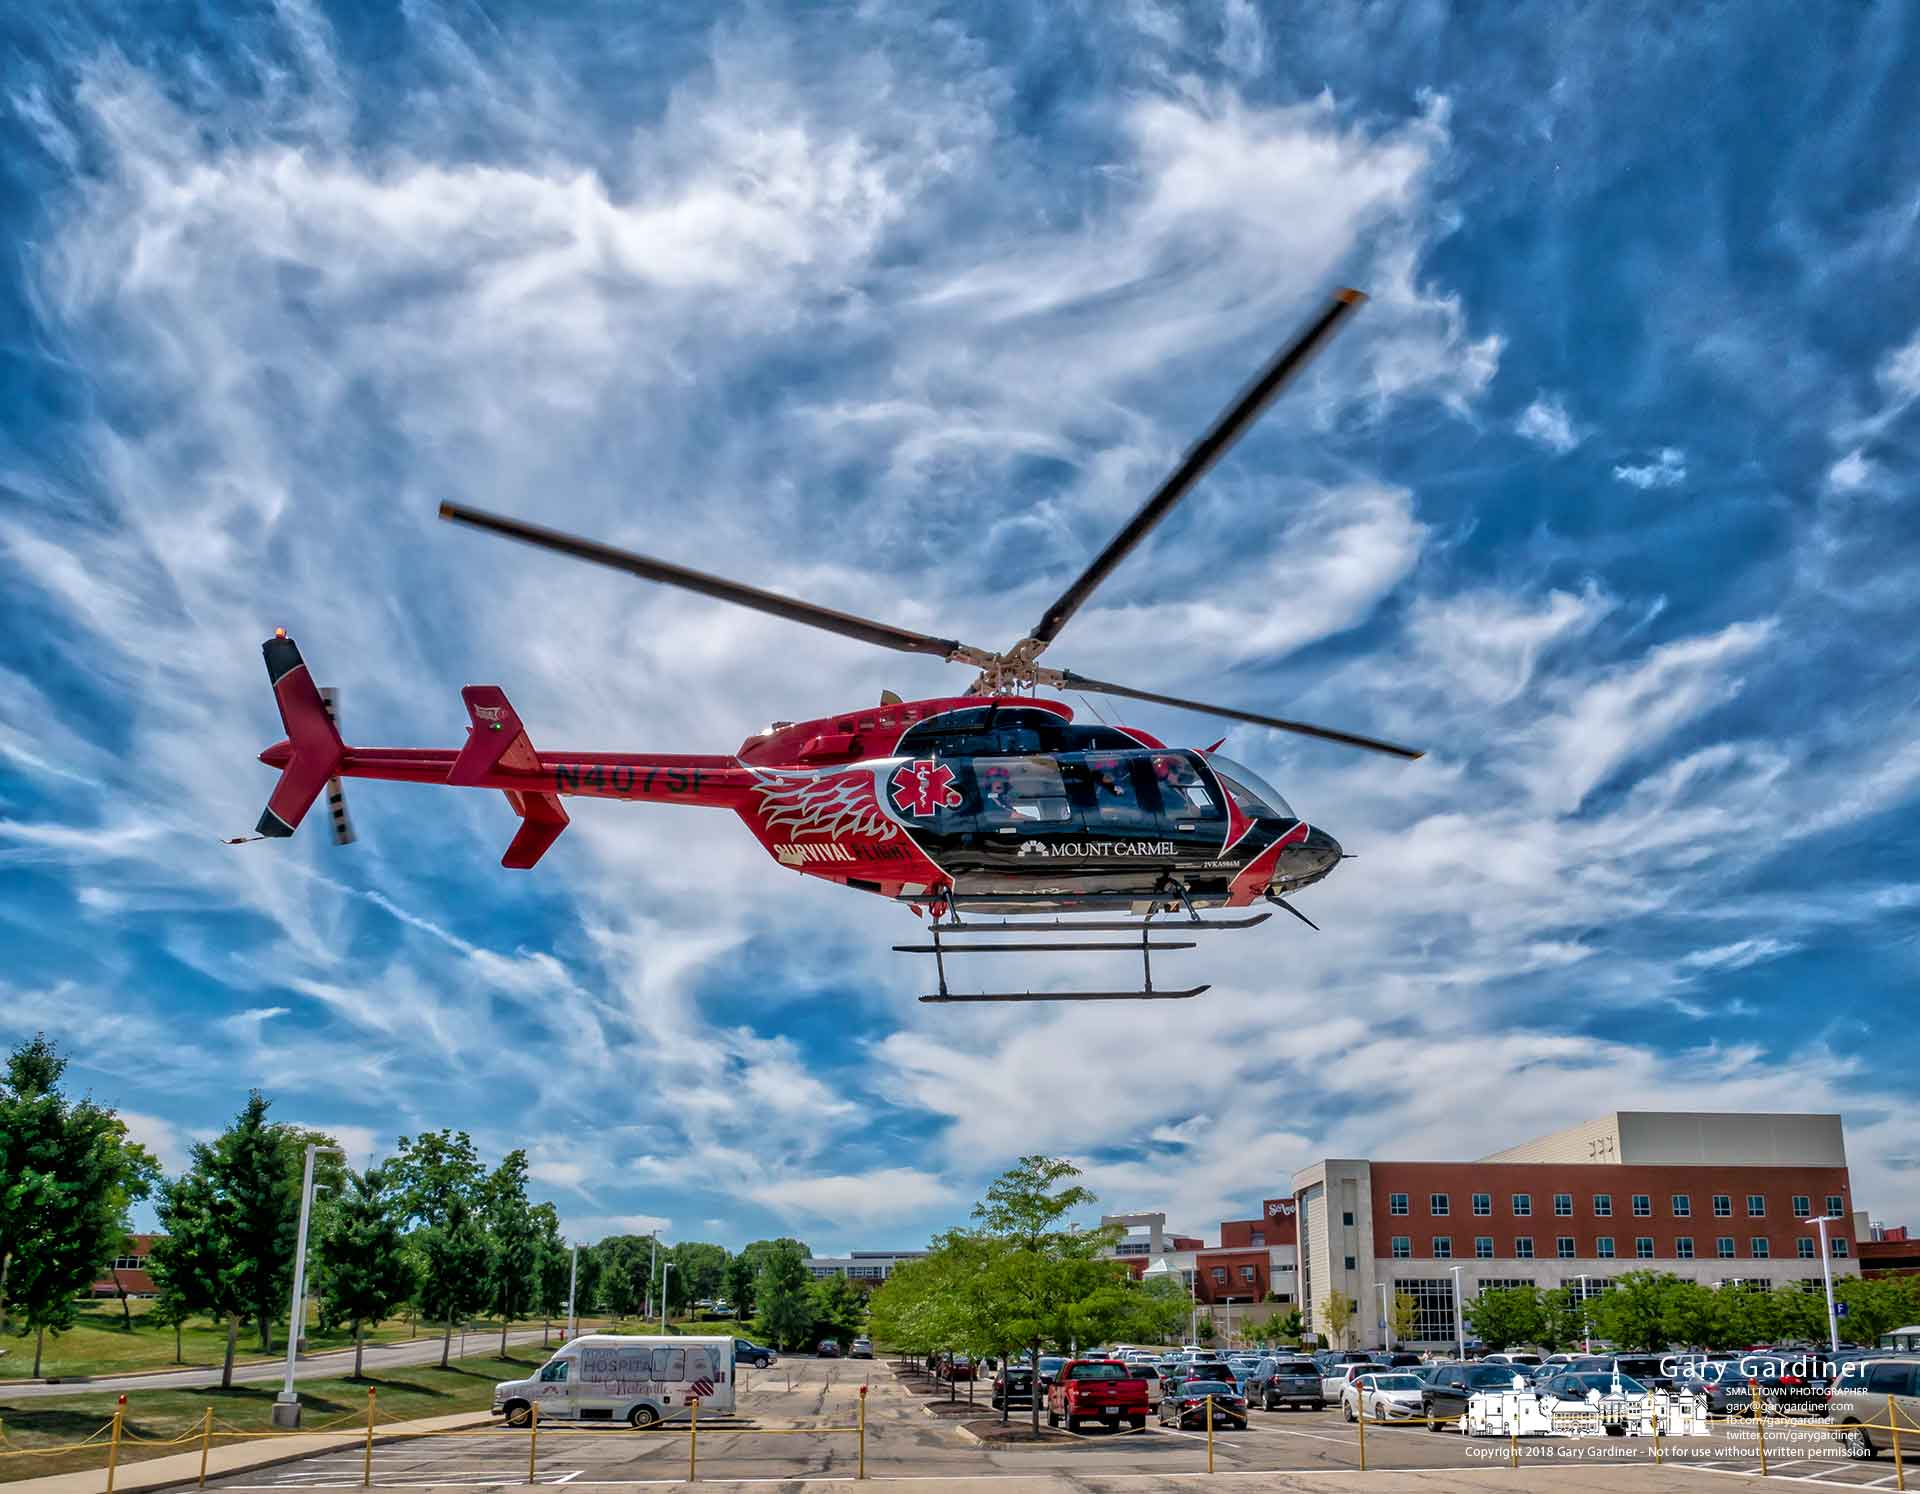 The Mt. Carmel Survival Flight helicopter lifts off from the St. Ann's Hospital helipad after a public relations visit to the complex on Cleveland Avenue. My Final Photo for July 19, 2018.